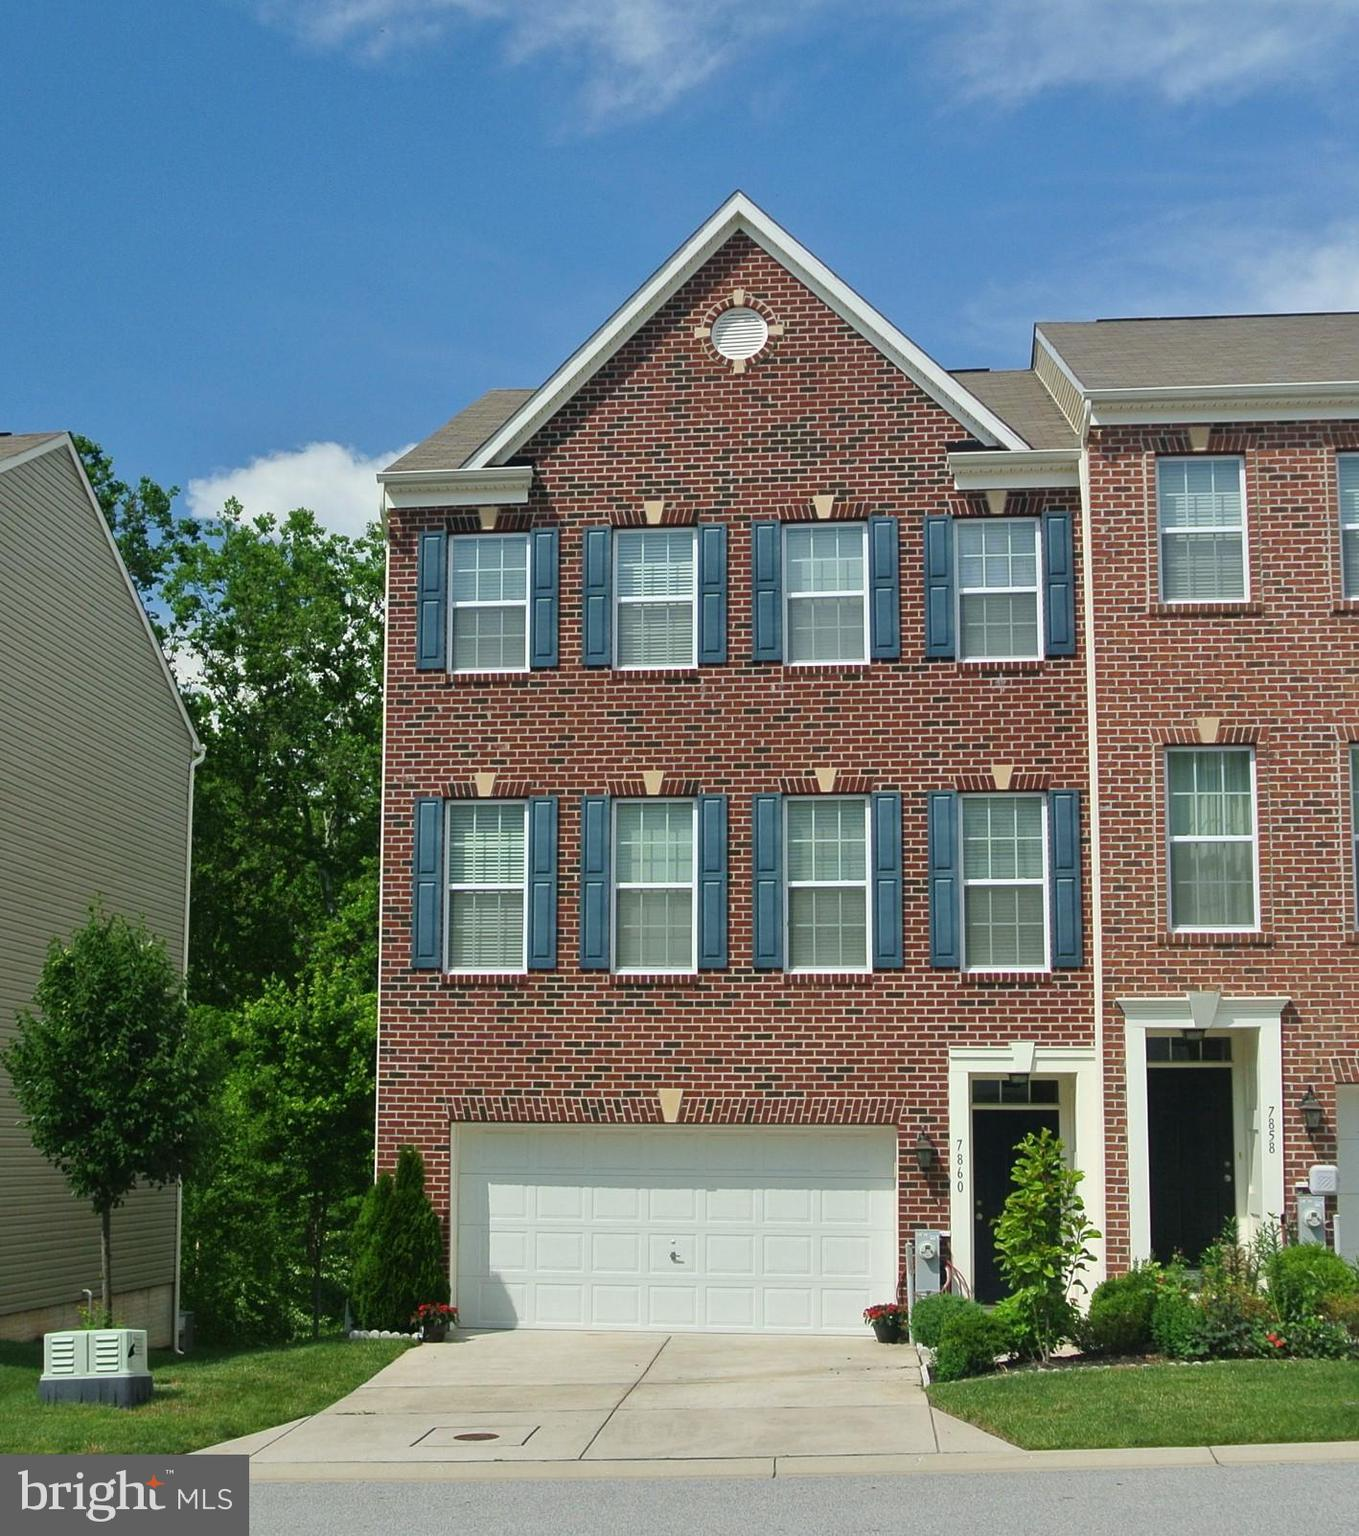 Welcome to desirable Simpson Mill with Tot lot, & minutes from Robinson Nature & Visitor Center!! Be